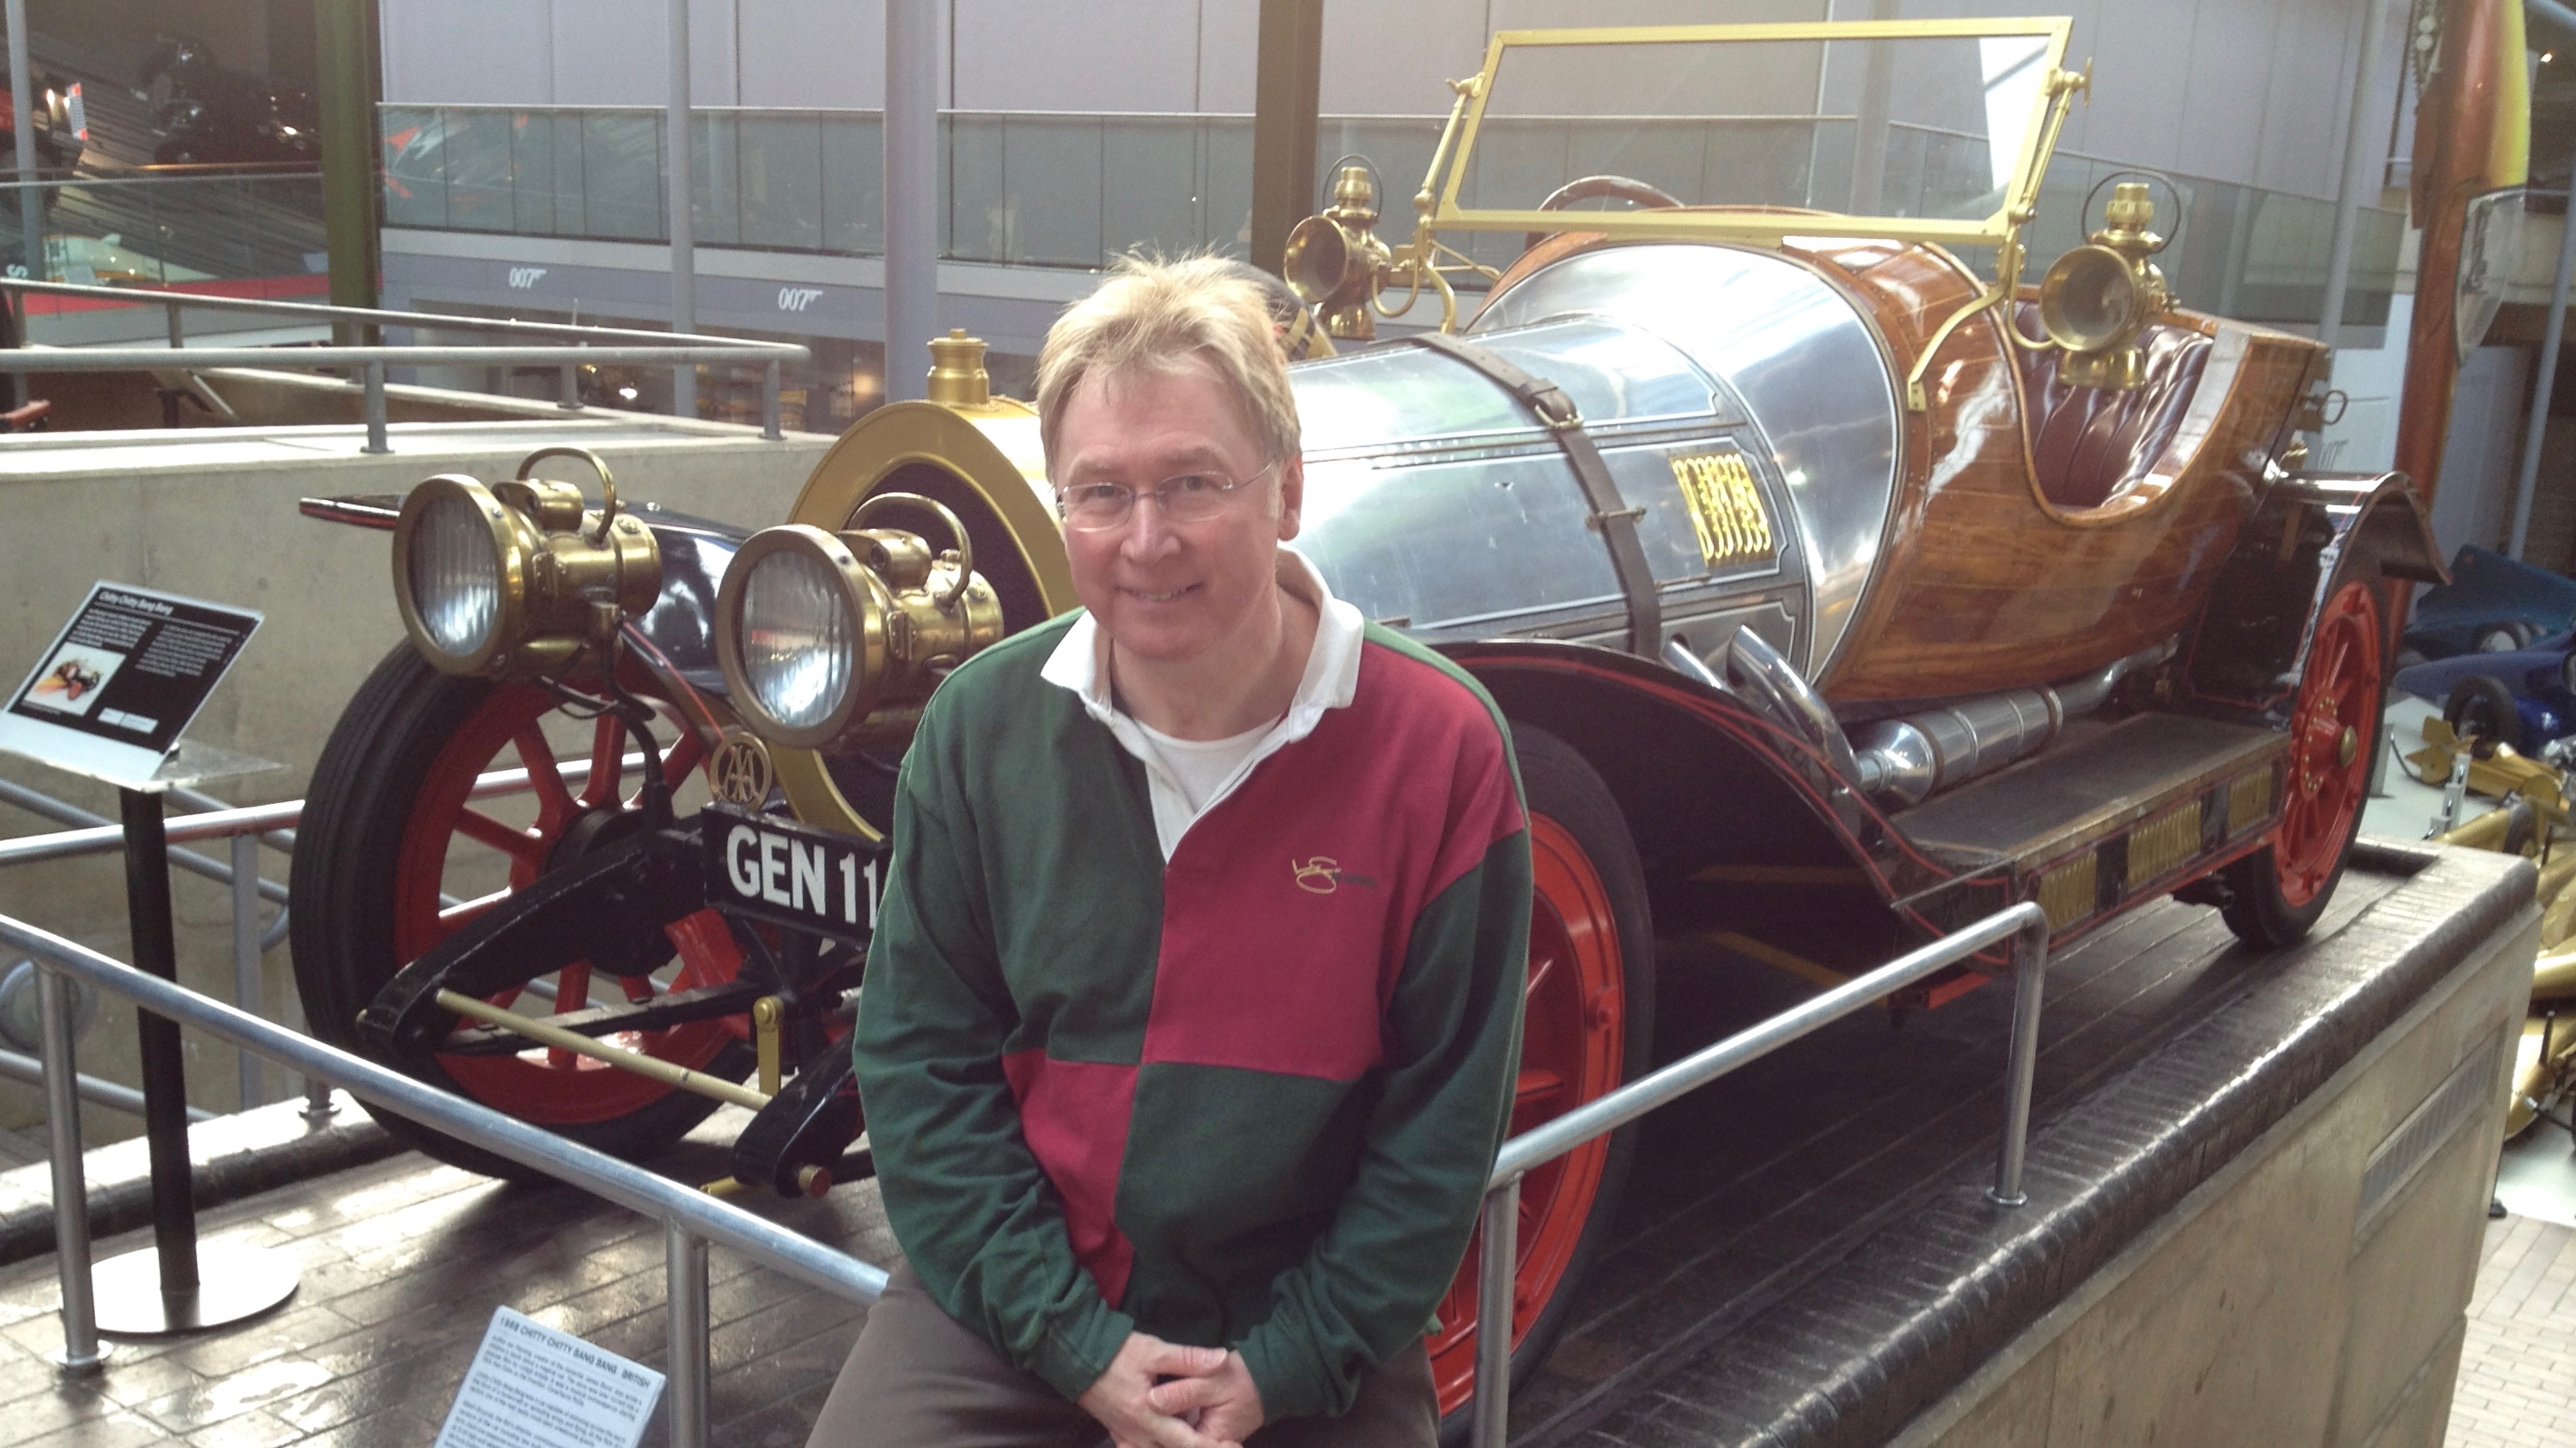 A photograpgh of Vince sat against the railings surrounding the Chitty, Chitty, Bang, Bang car at the National Motor Museum at Beaulieu